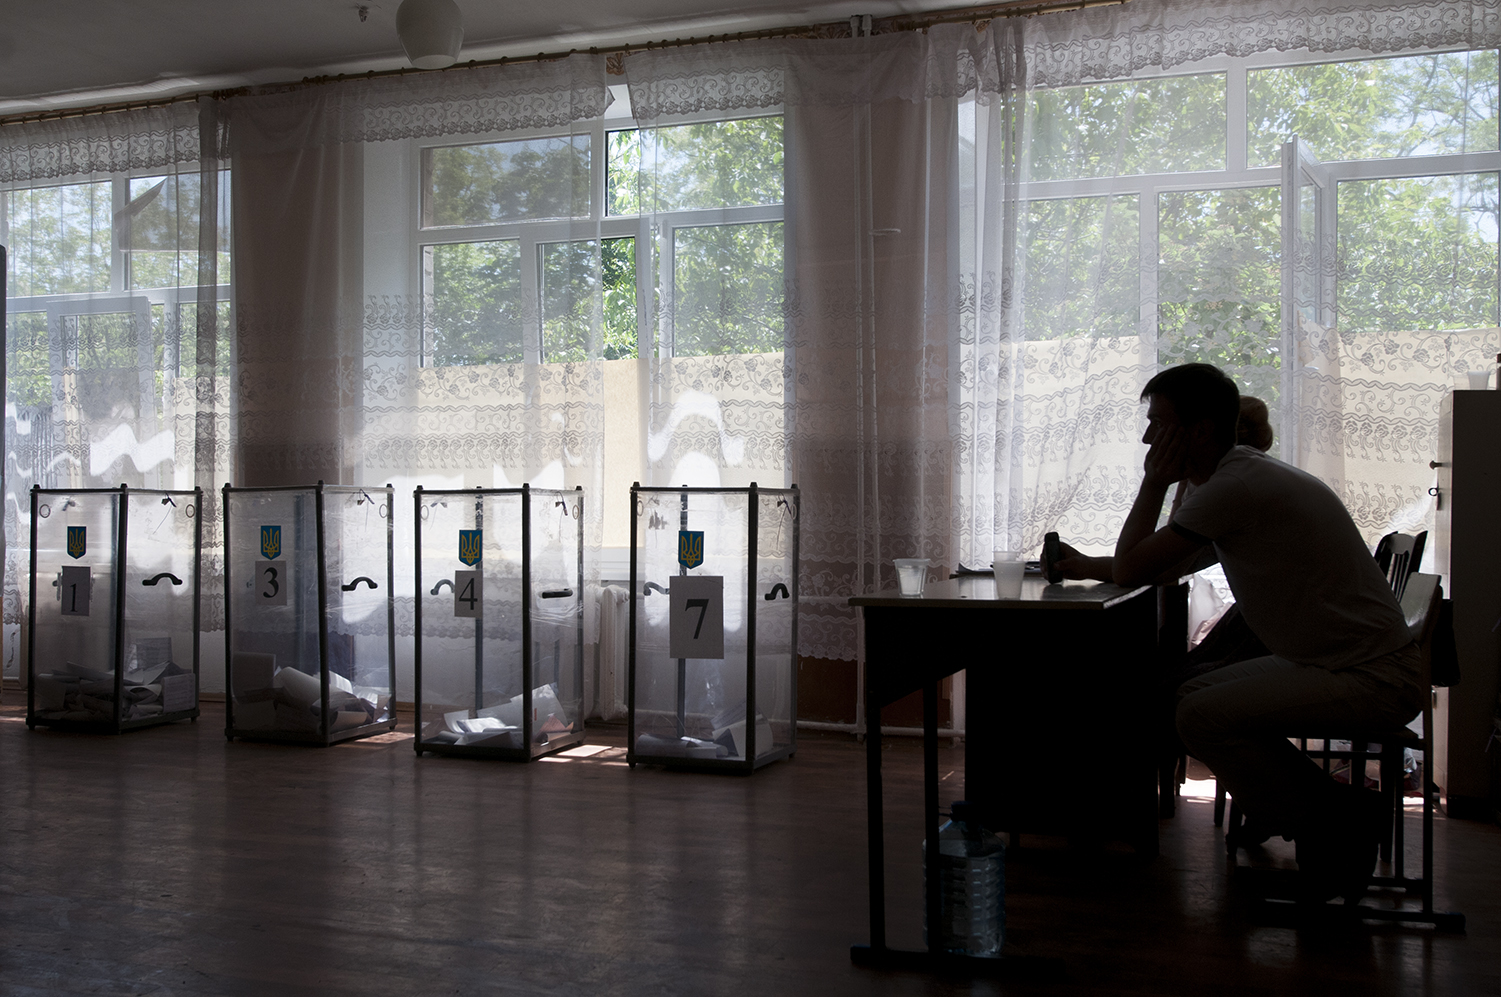 Peapole watching over the polling box from an empty polling stationinside a school of Mairupol